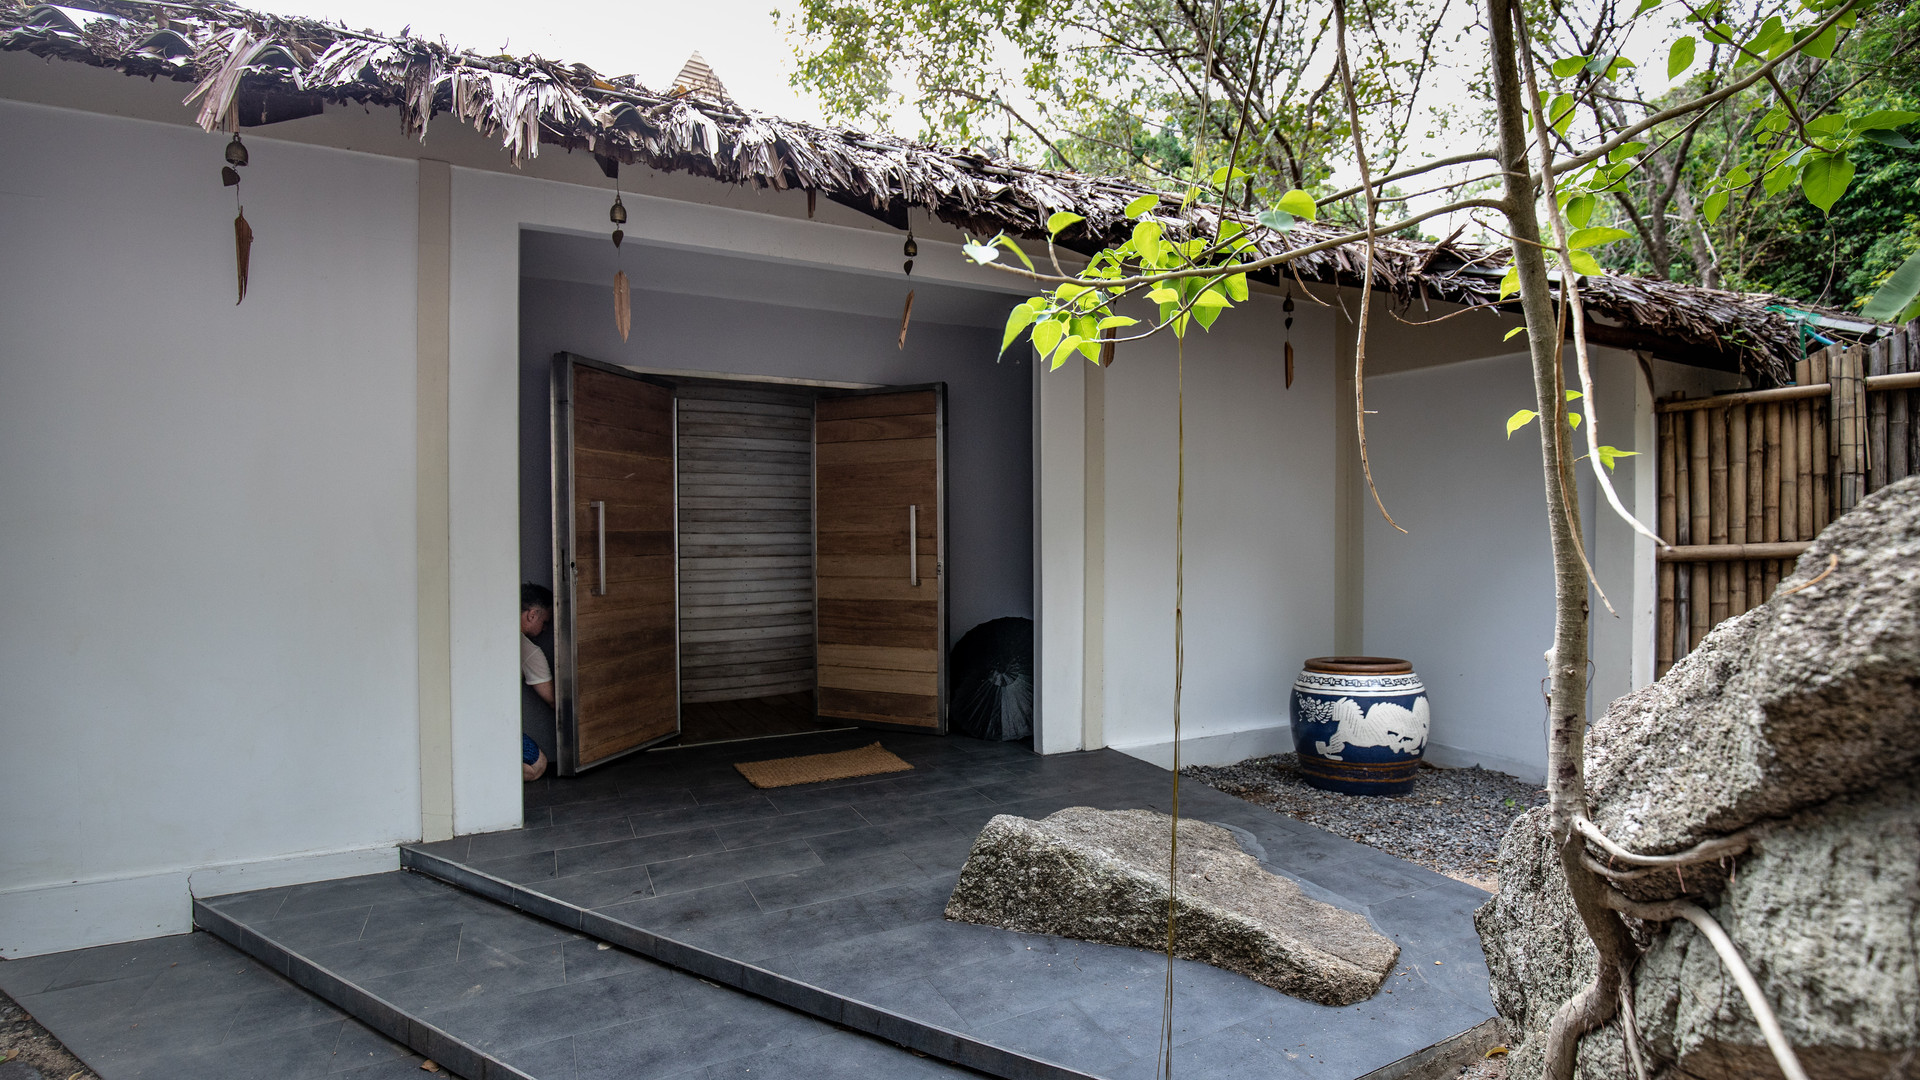 Main general entrance of the Hedonist Villa